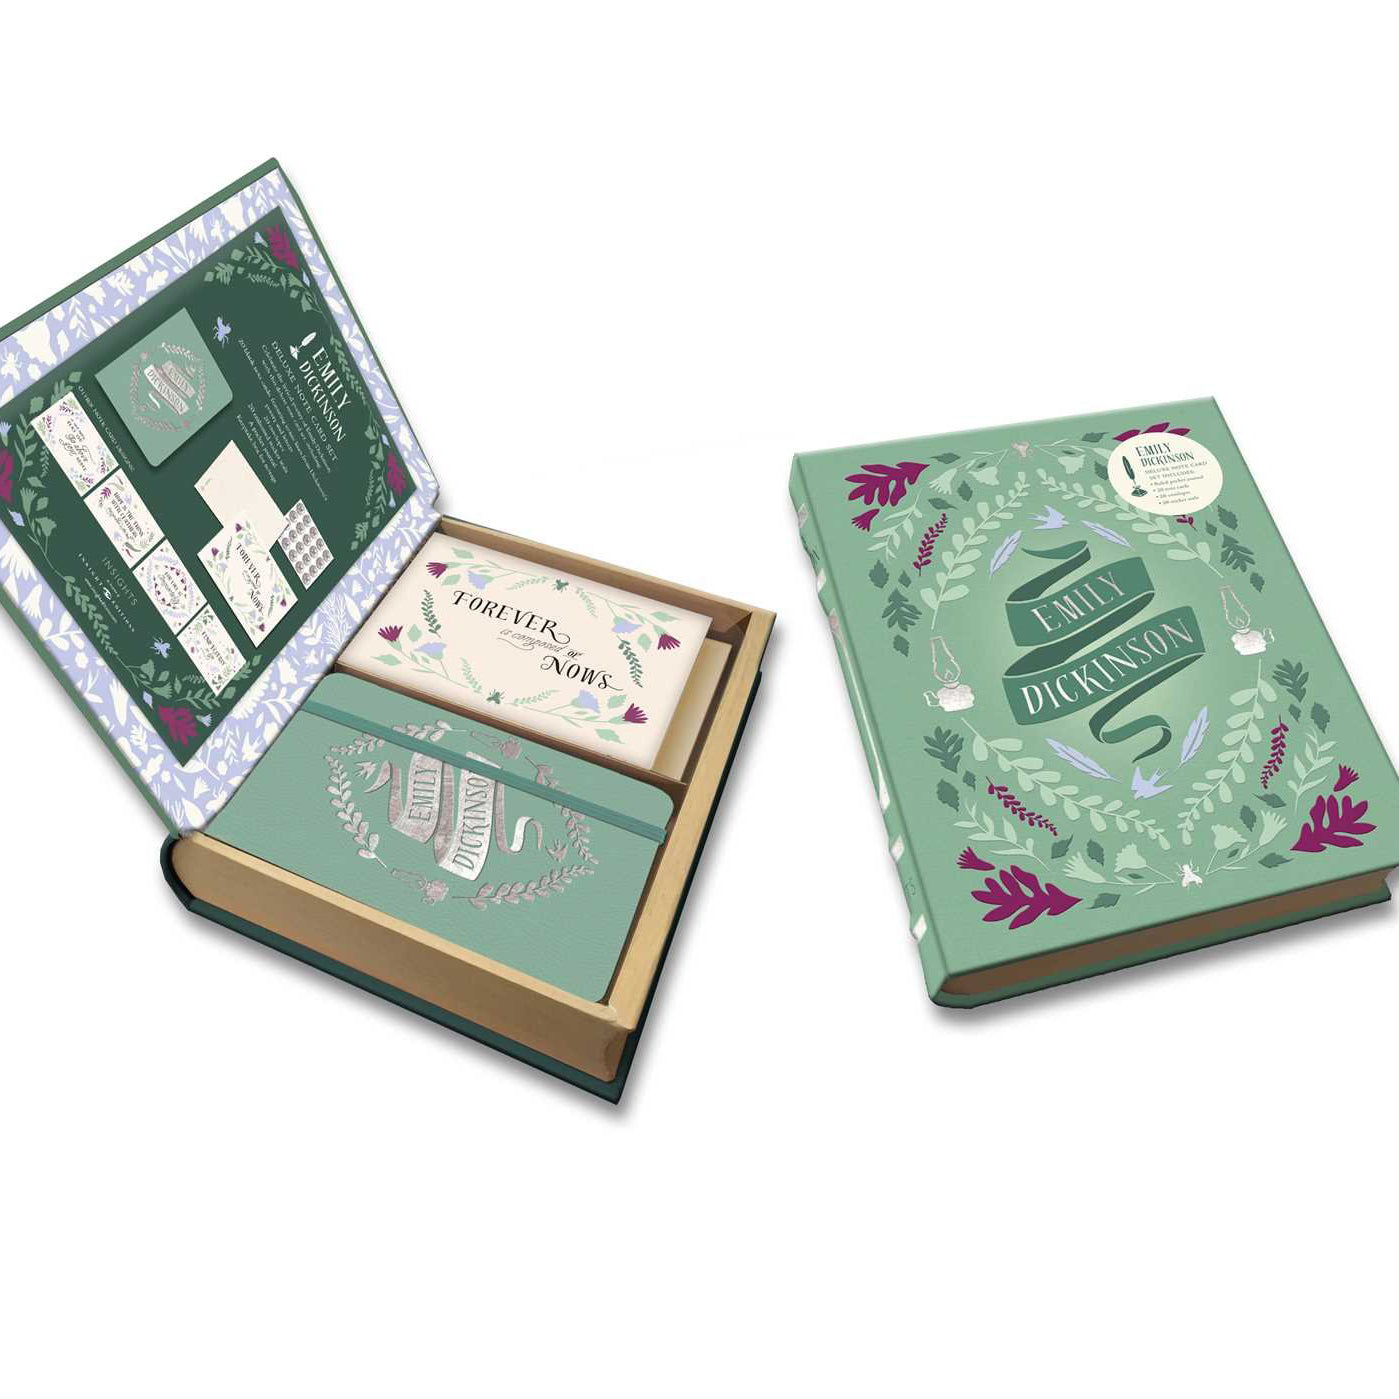 Literary Stationery Set - Emily Dickinson